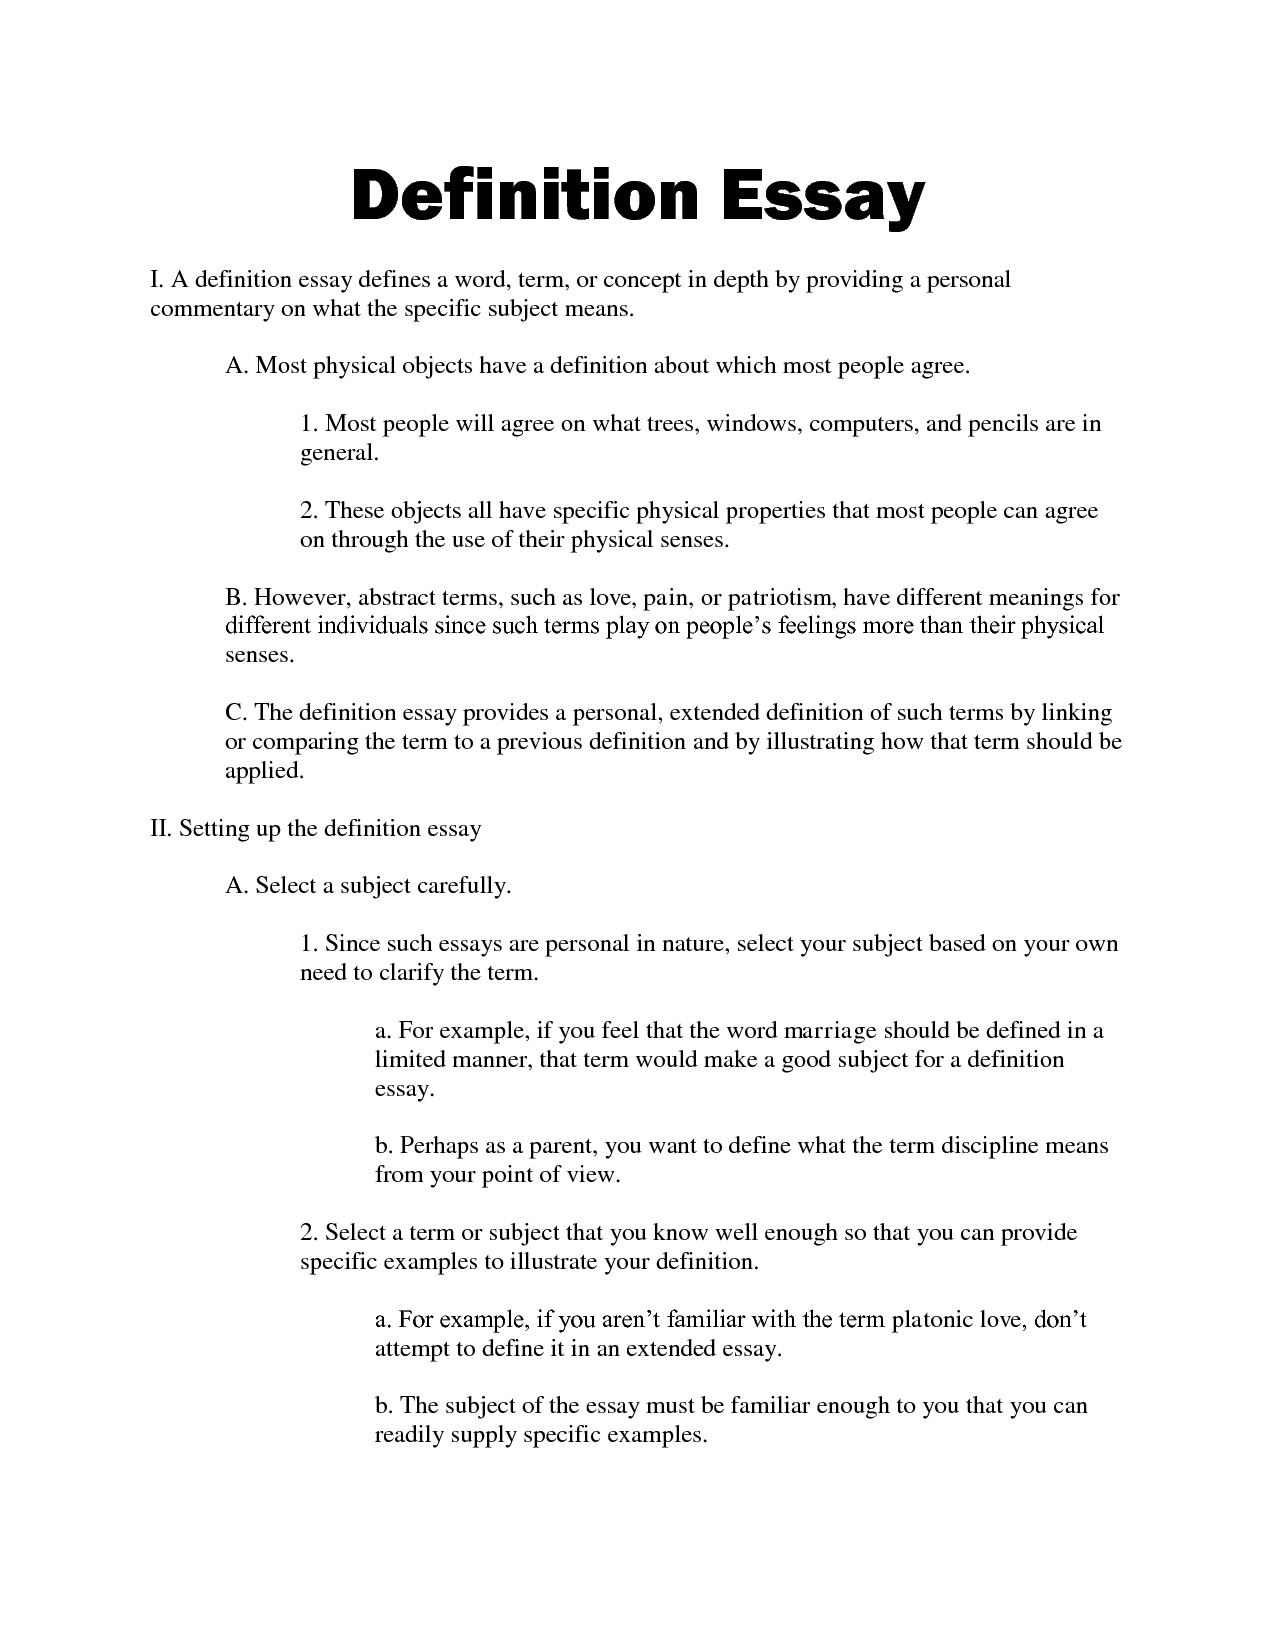 001 Definition Essays Gj60o8orim Essay Marvelous Topics On Beauty Samples Full